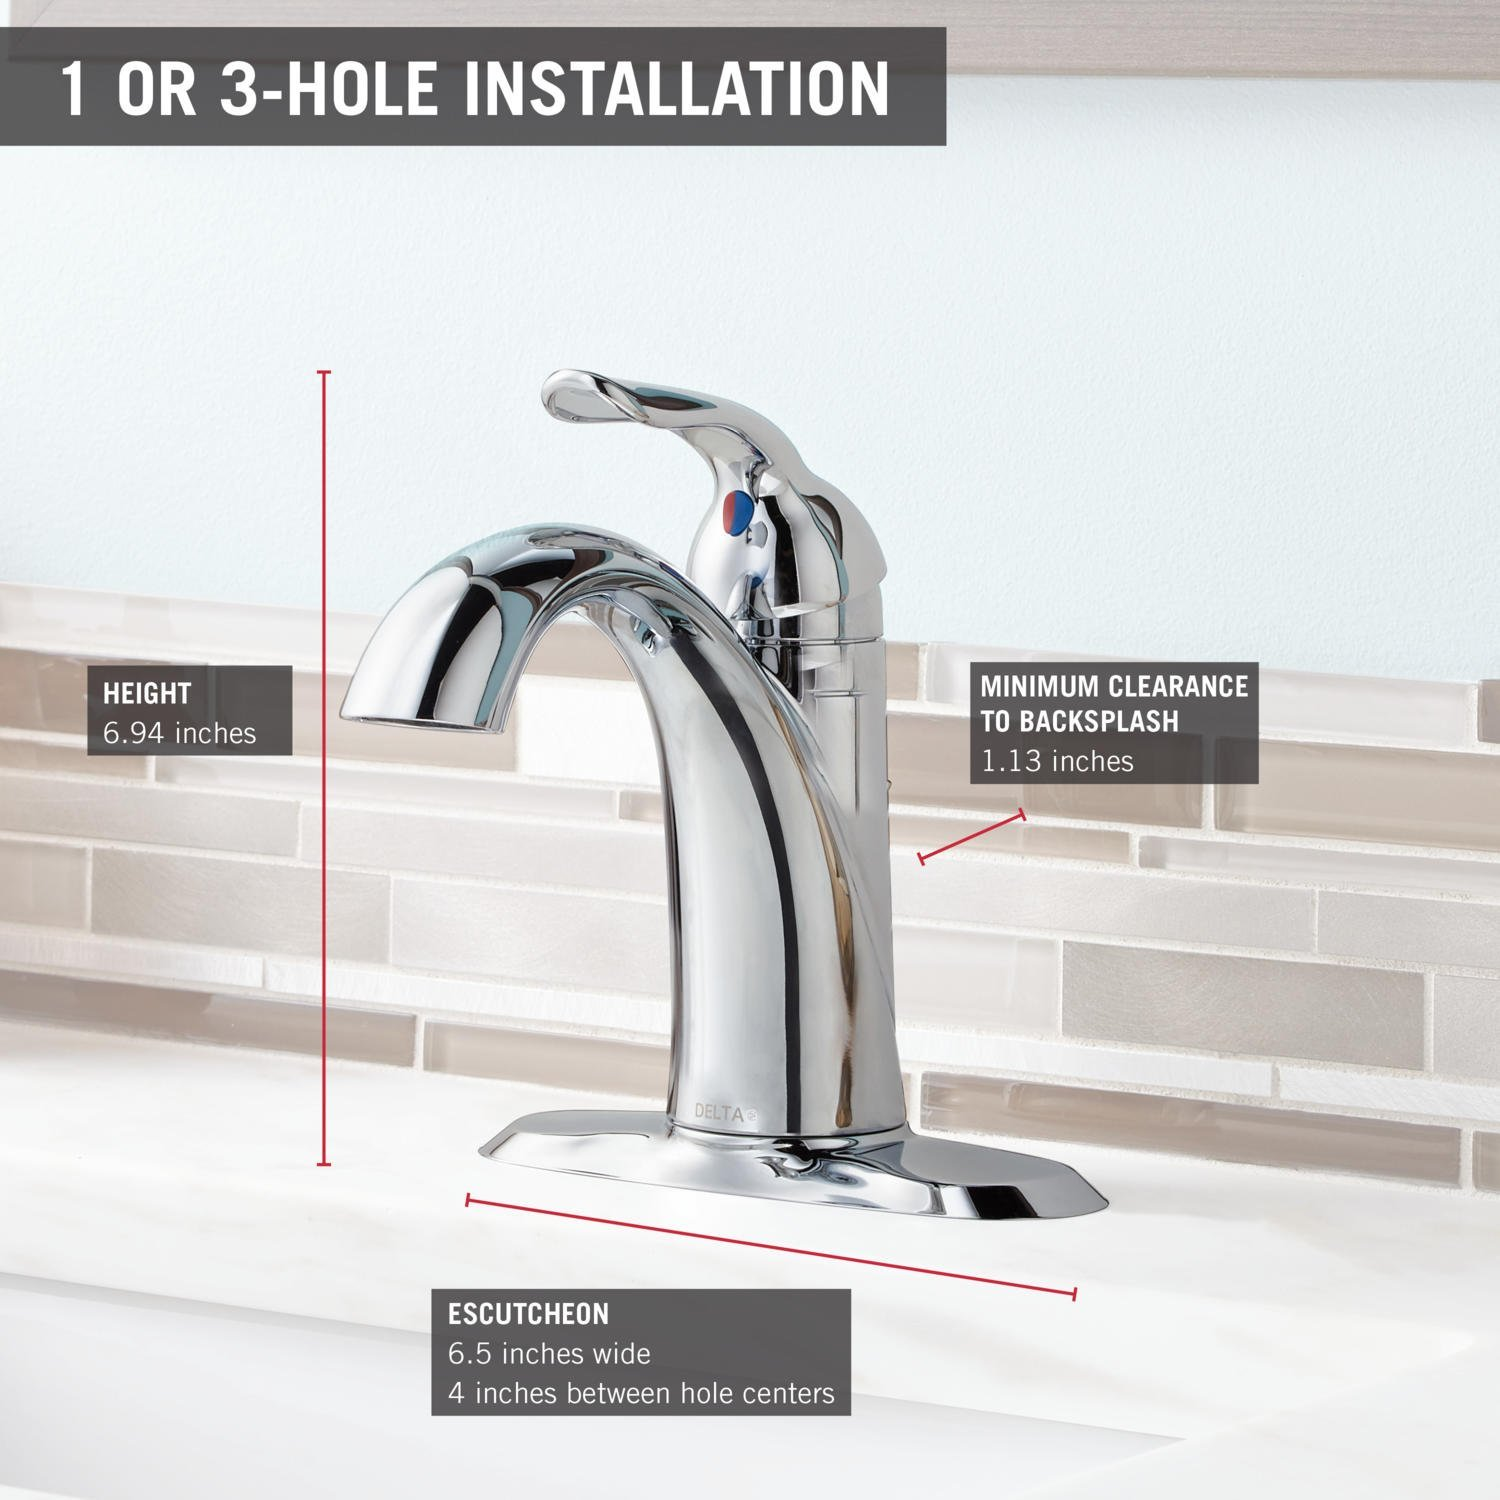 DELTA FAUCET Lahara Single-Handle Bathroom Faucet with Diamond Seal Technology and Metal Drain Assembly Venetian Bronze 538-RBMPU-DST